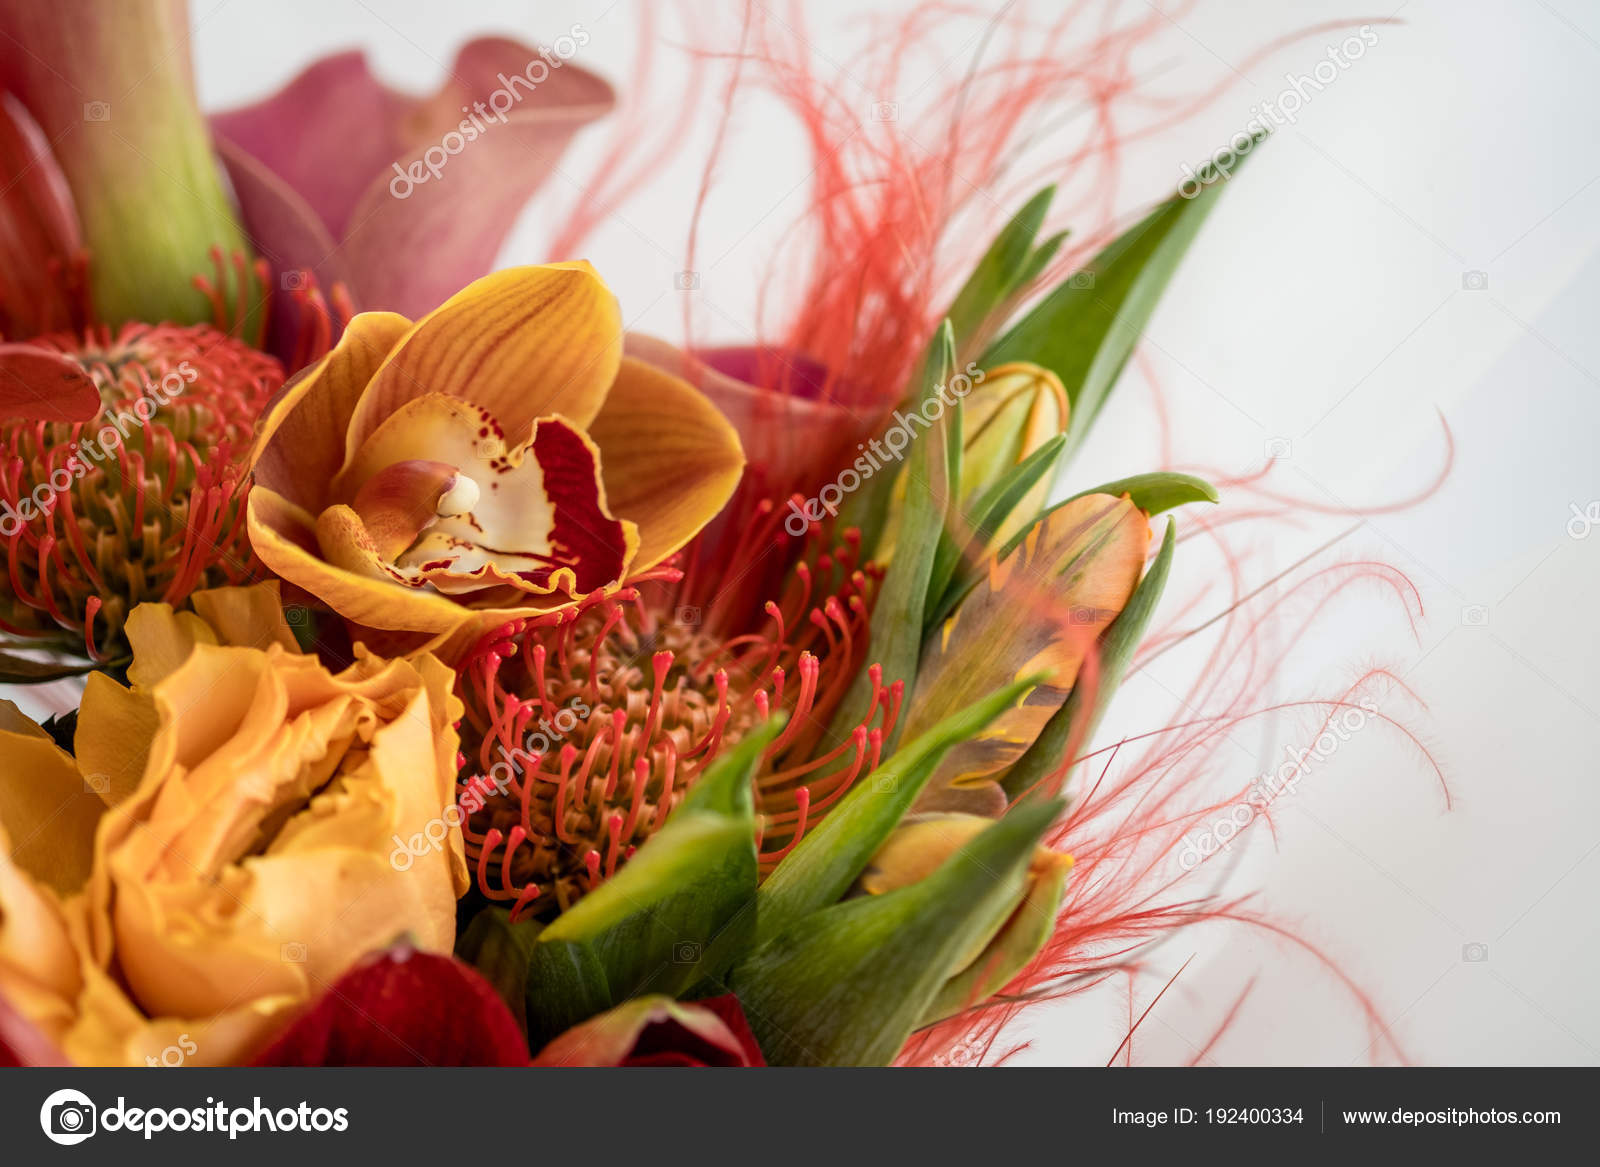 Bright Bouquet Red Exotic Flowers — Stock Photo © Stockoholic #192400334